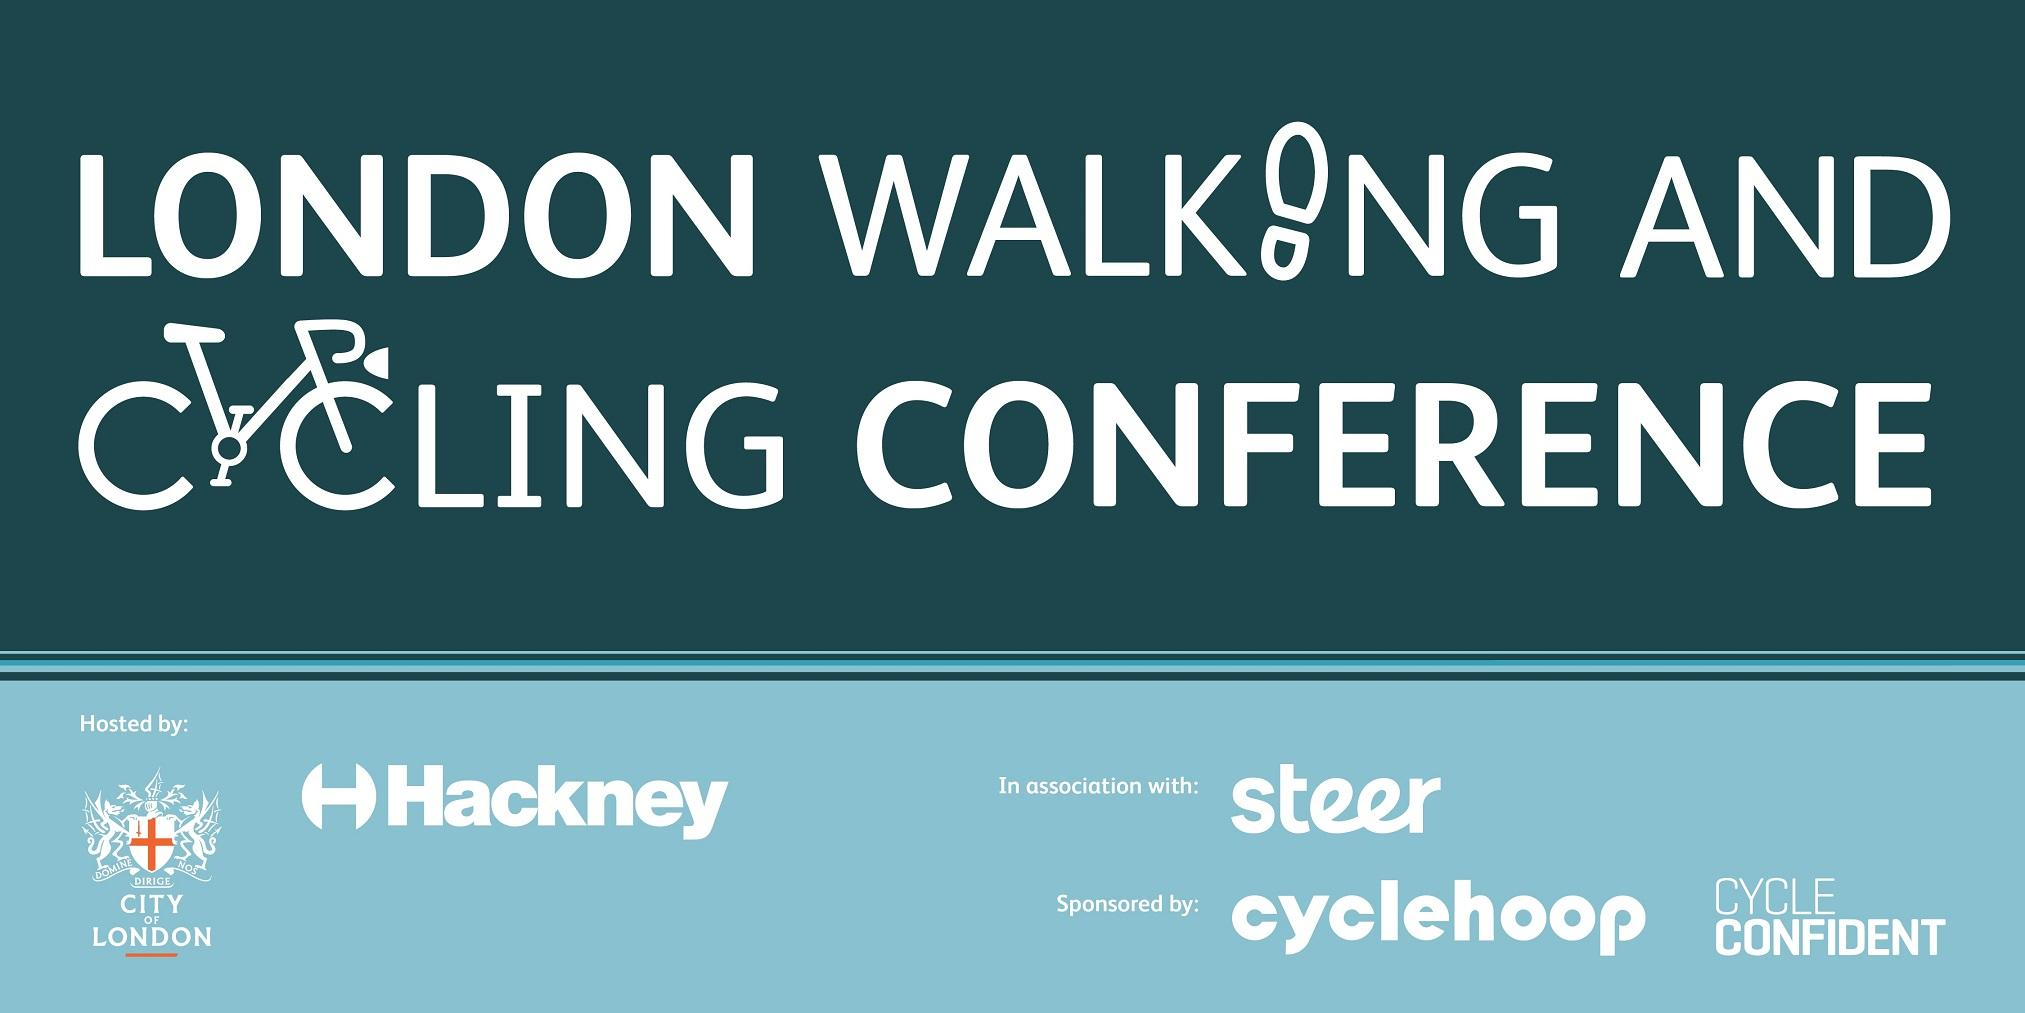 London Walking and Cycling Conference